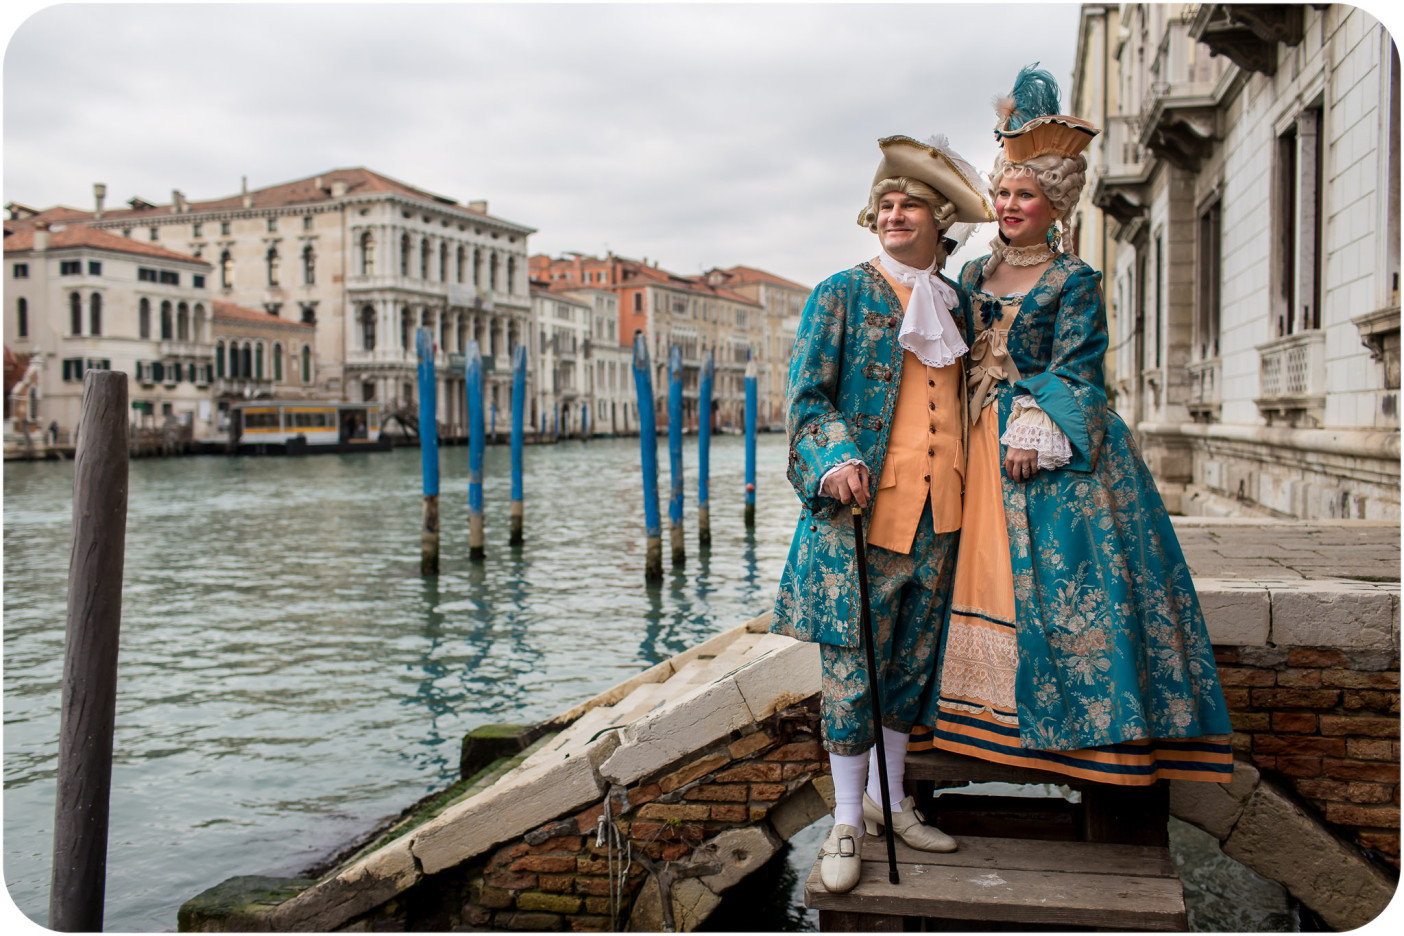 The couple looked very at ease in their Carnival outfits and enjoyed each moment of their photo walk in Venice